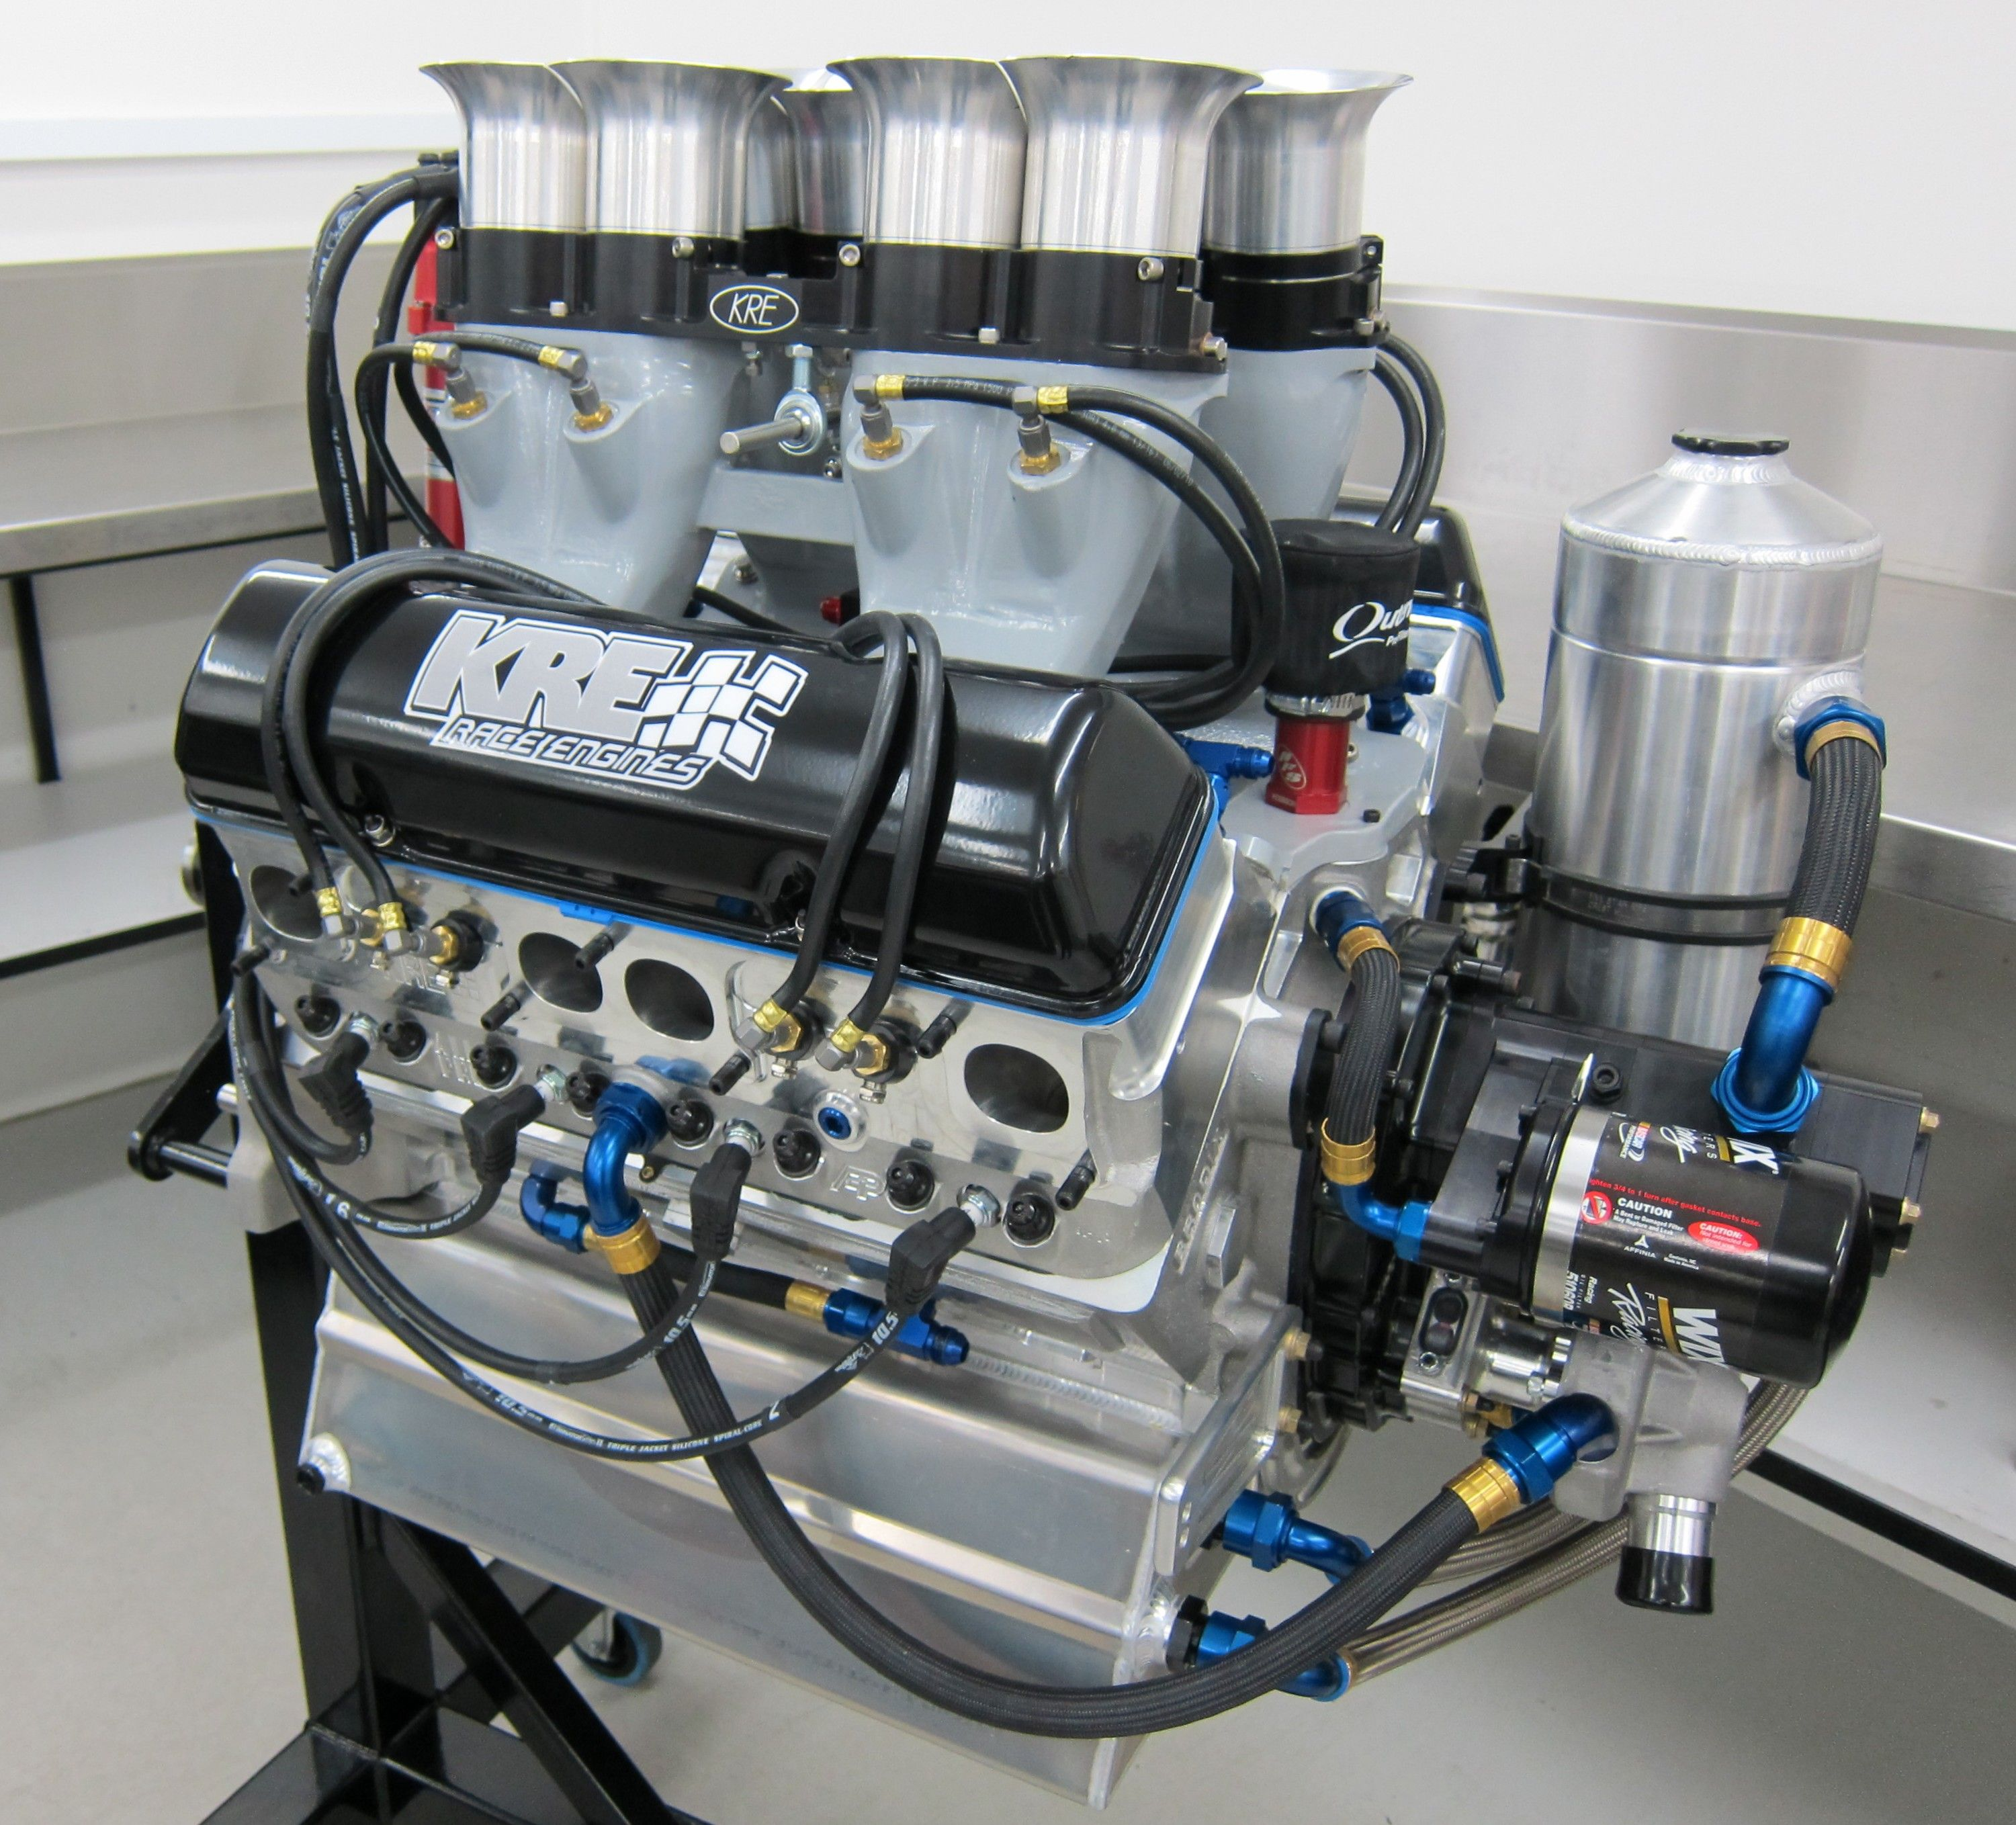 Kre Brodix 410 Engine1 Engineering Sprint Cars Race Engines